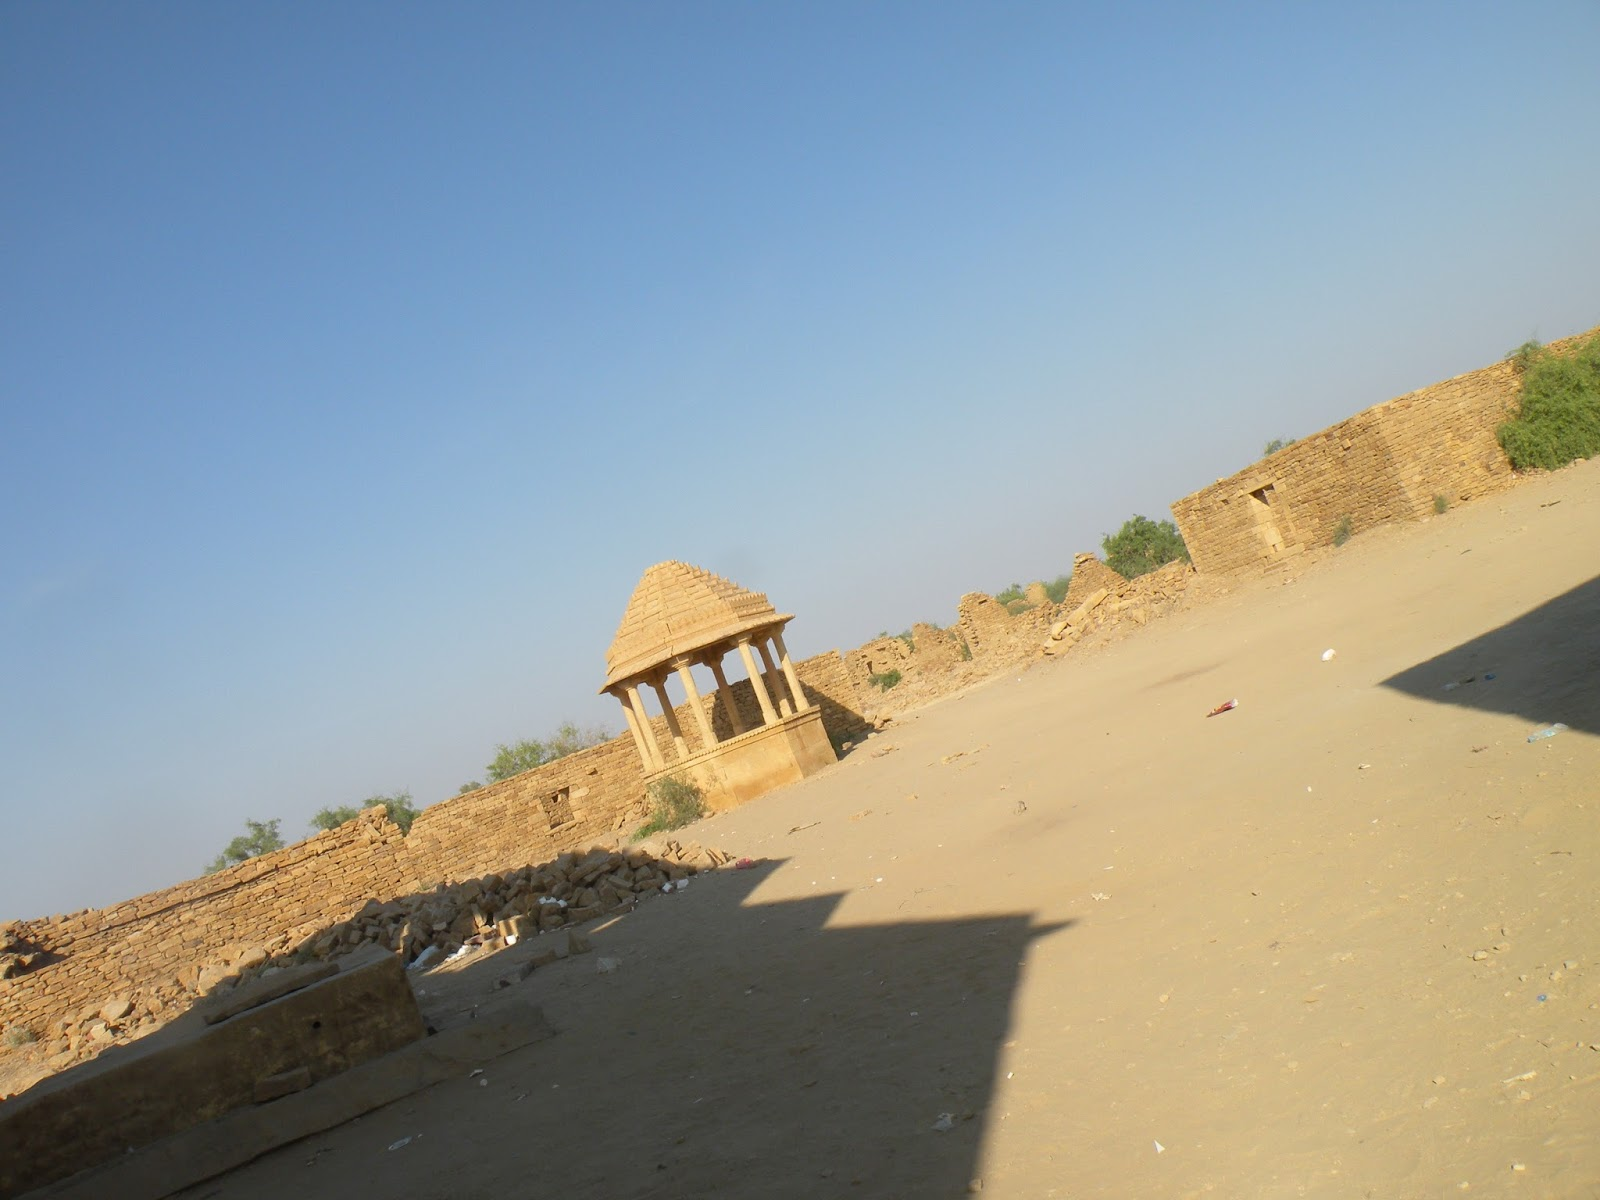 Abandoned village in Rajasthan near Jaisalmer, Kuldhara